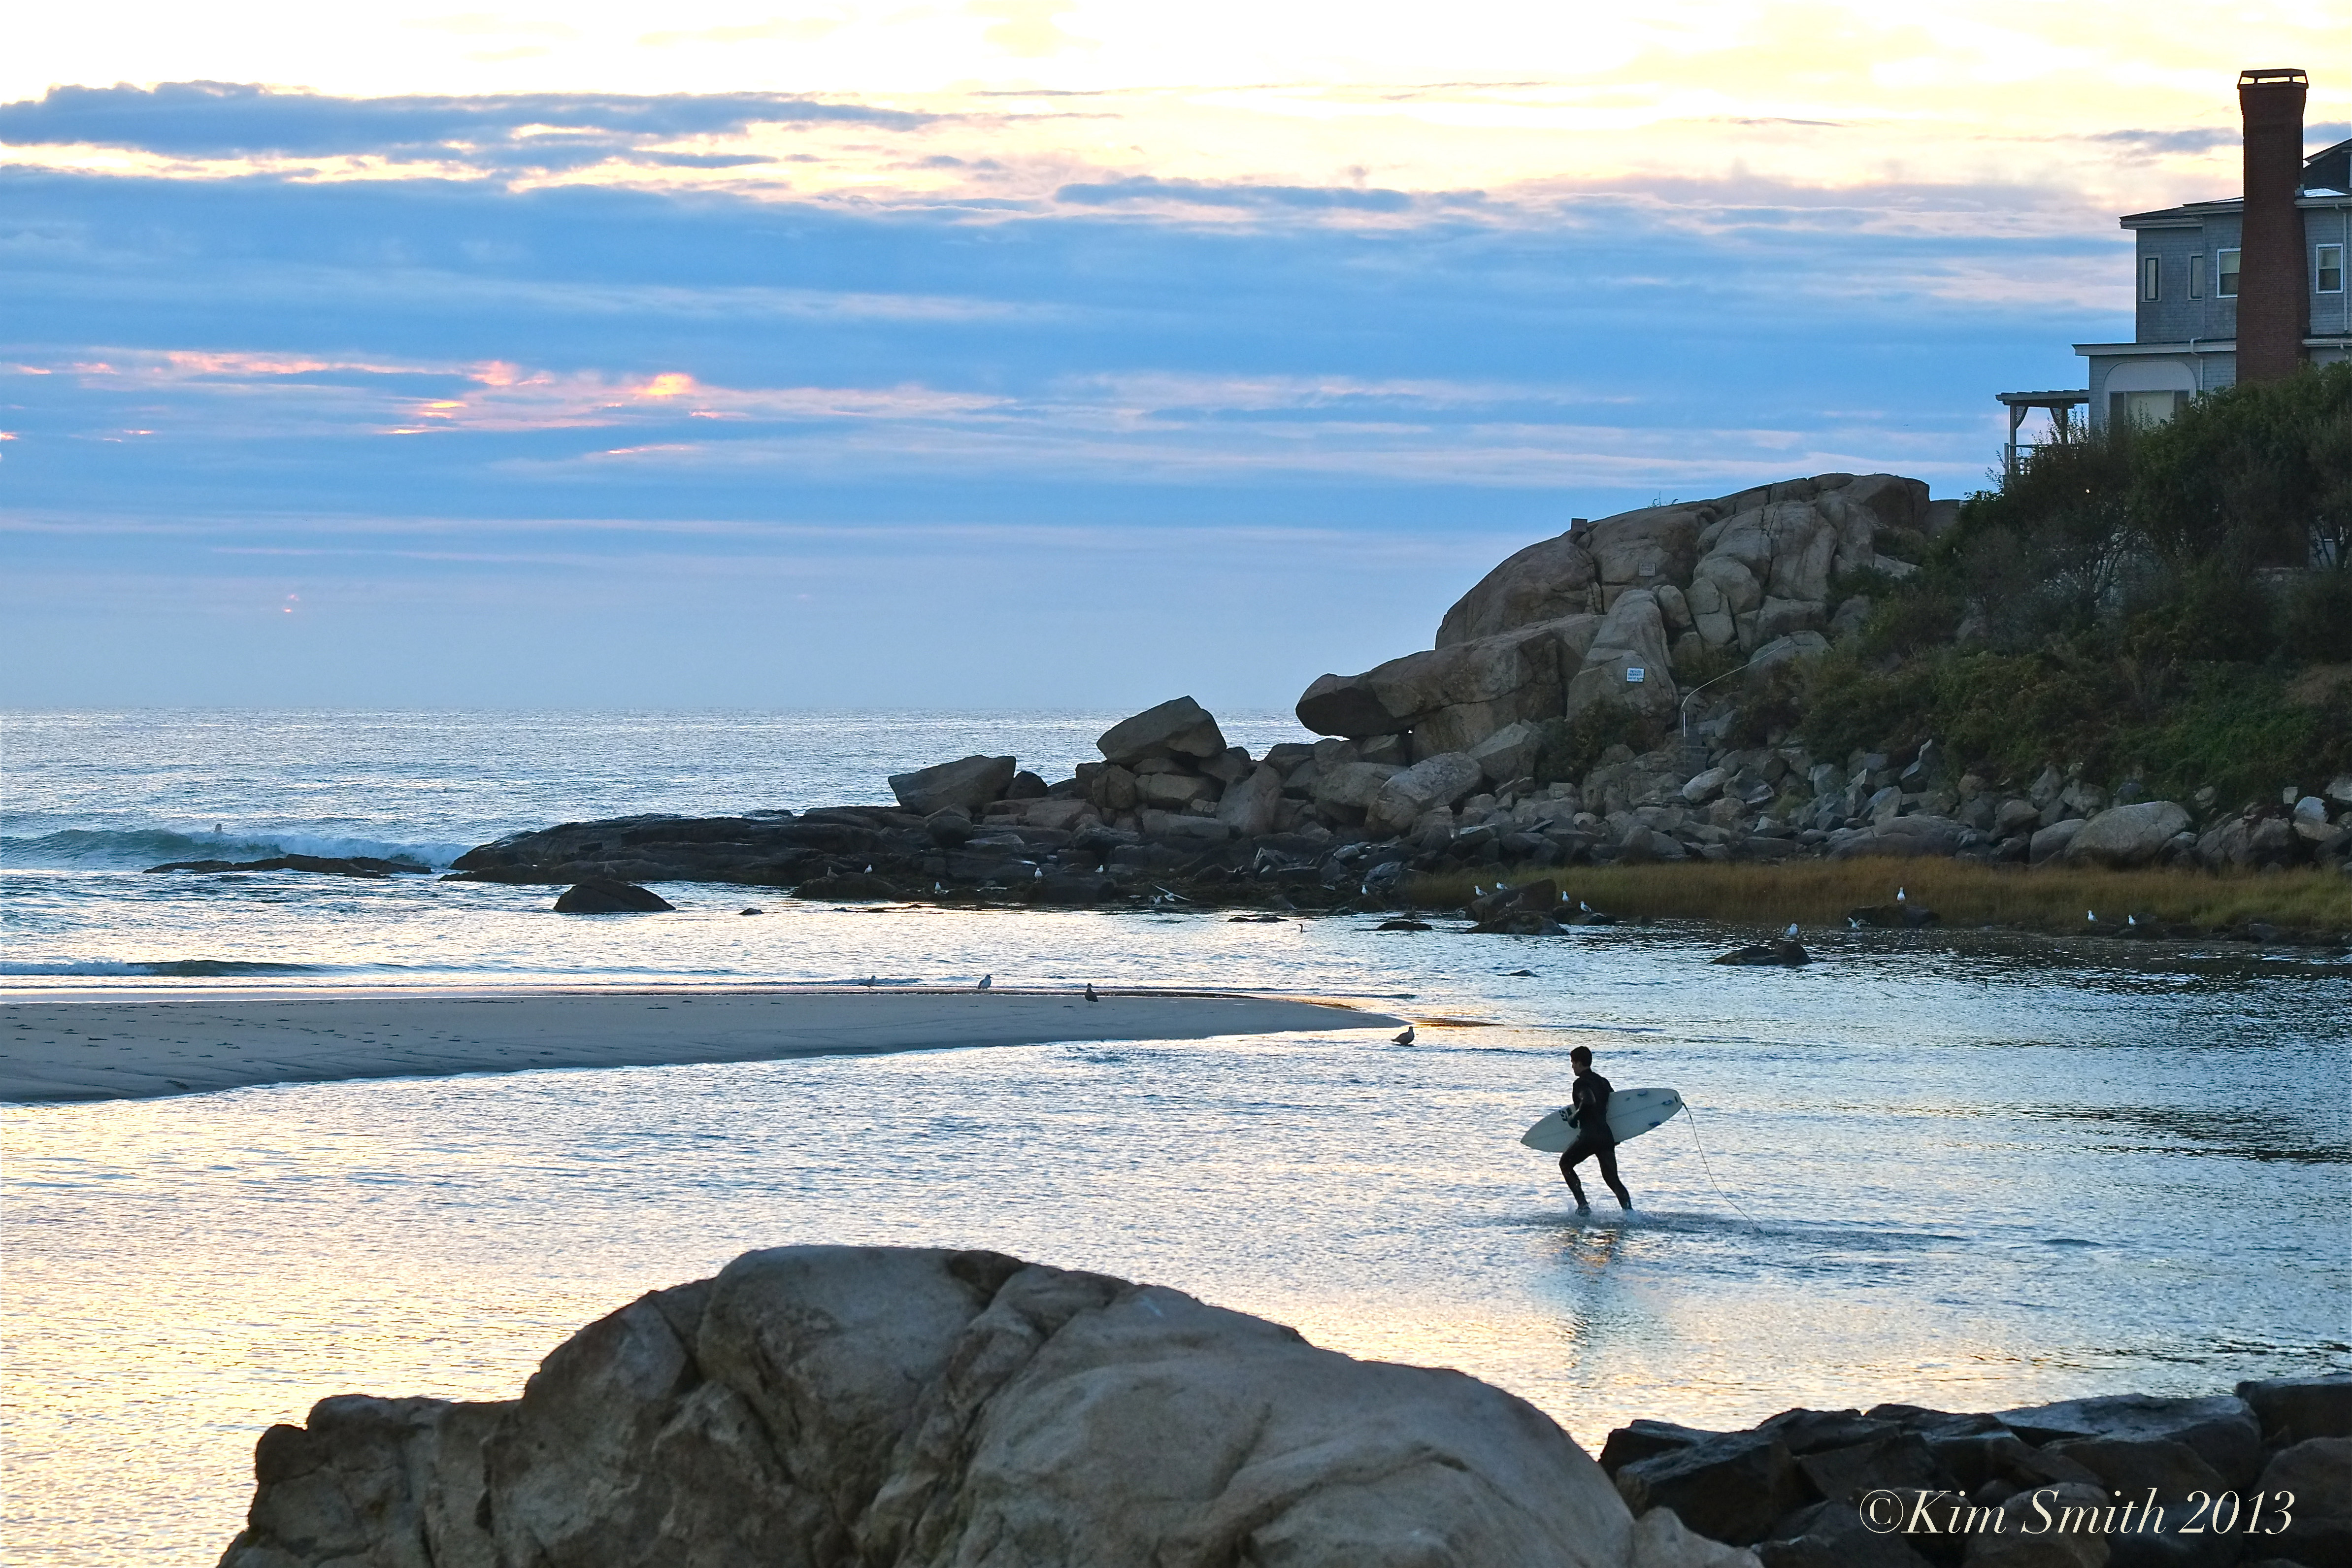 New England Surf report – Good Morning Gloucester